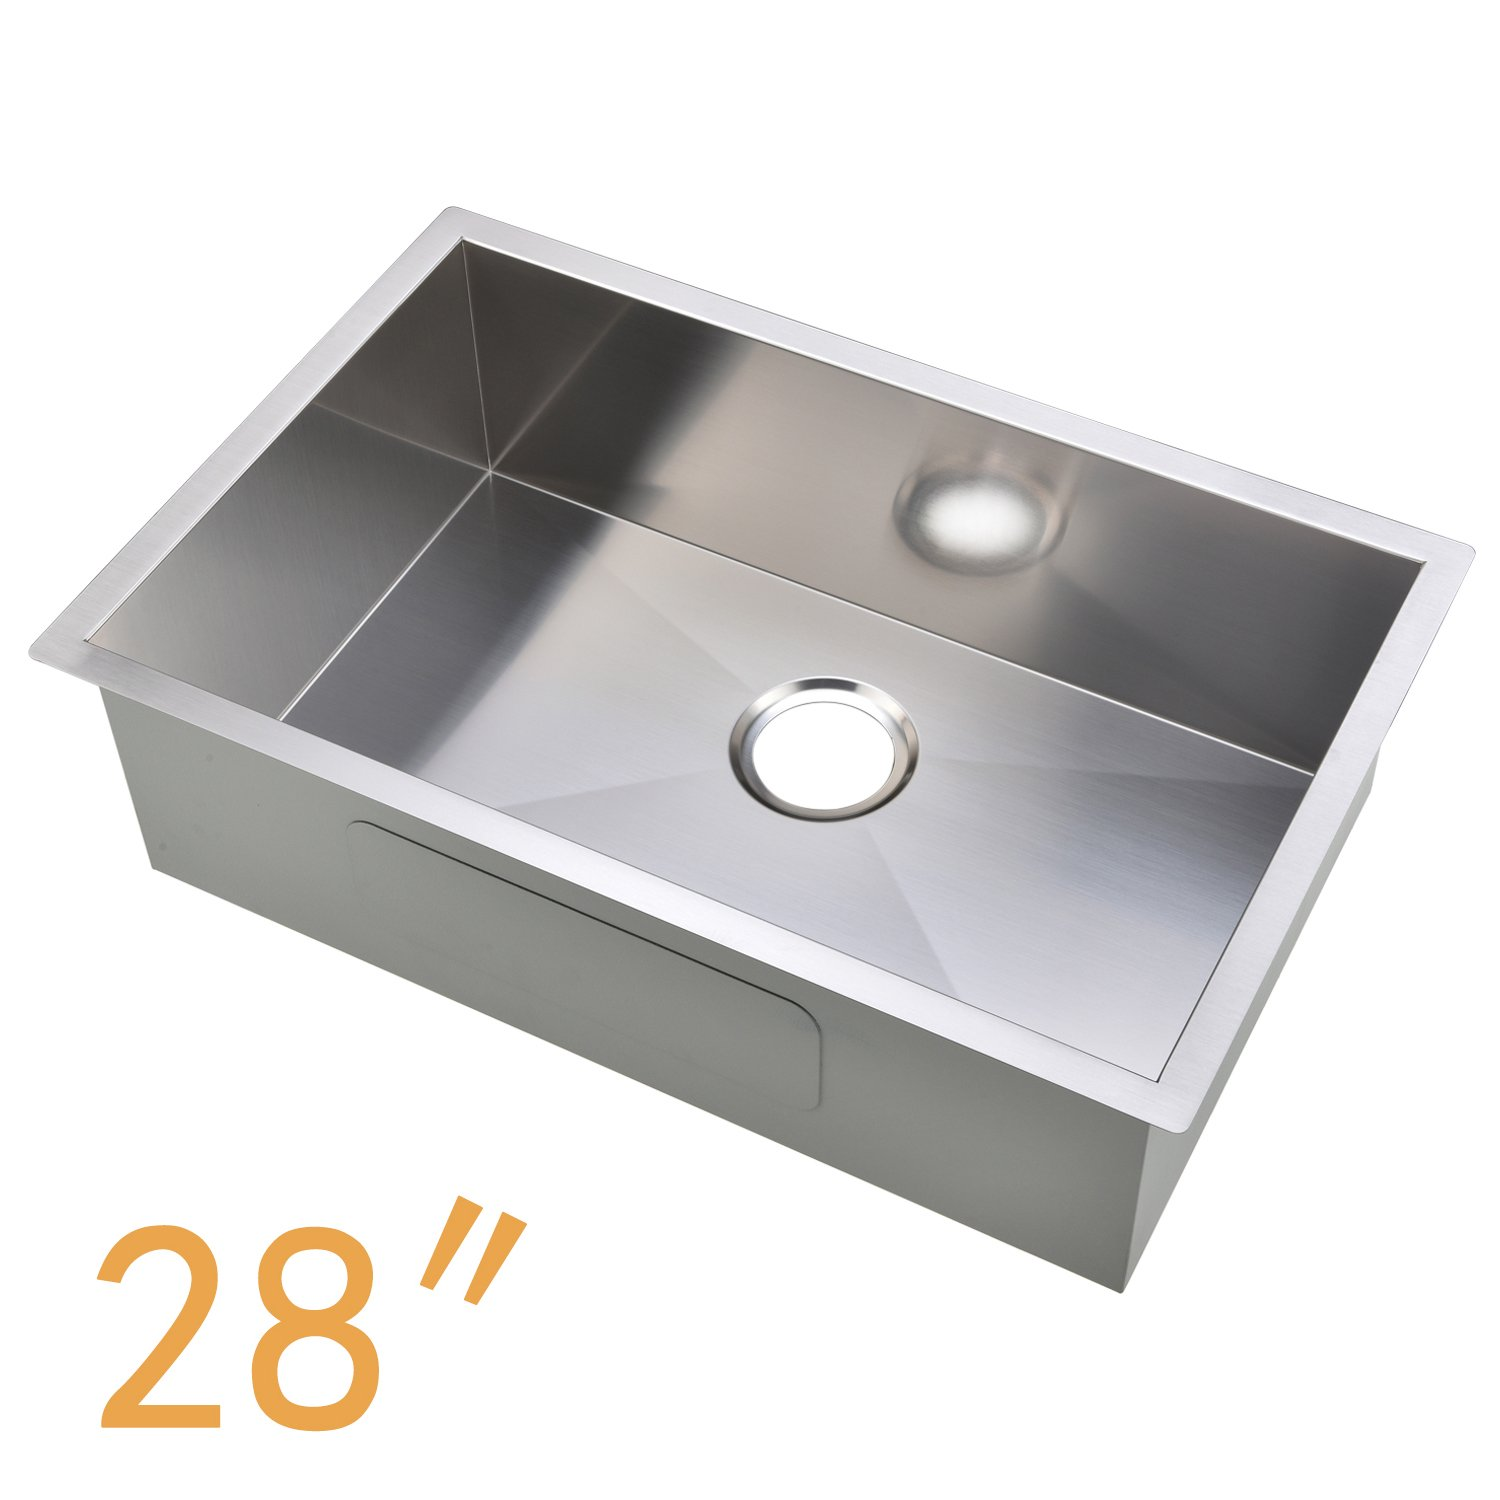 Ufaucet Commercial 28 Inch 16 Gauge Undermount Single Bowl Stainless Steel Kitchen Sinks